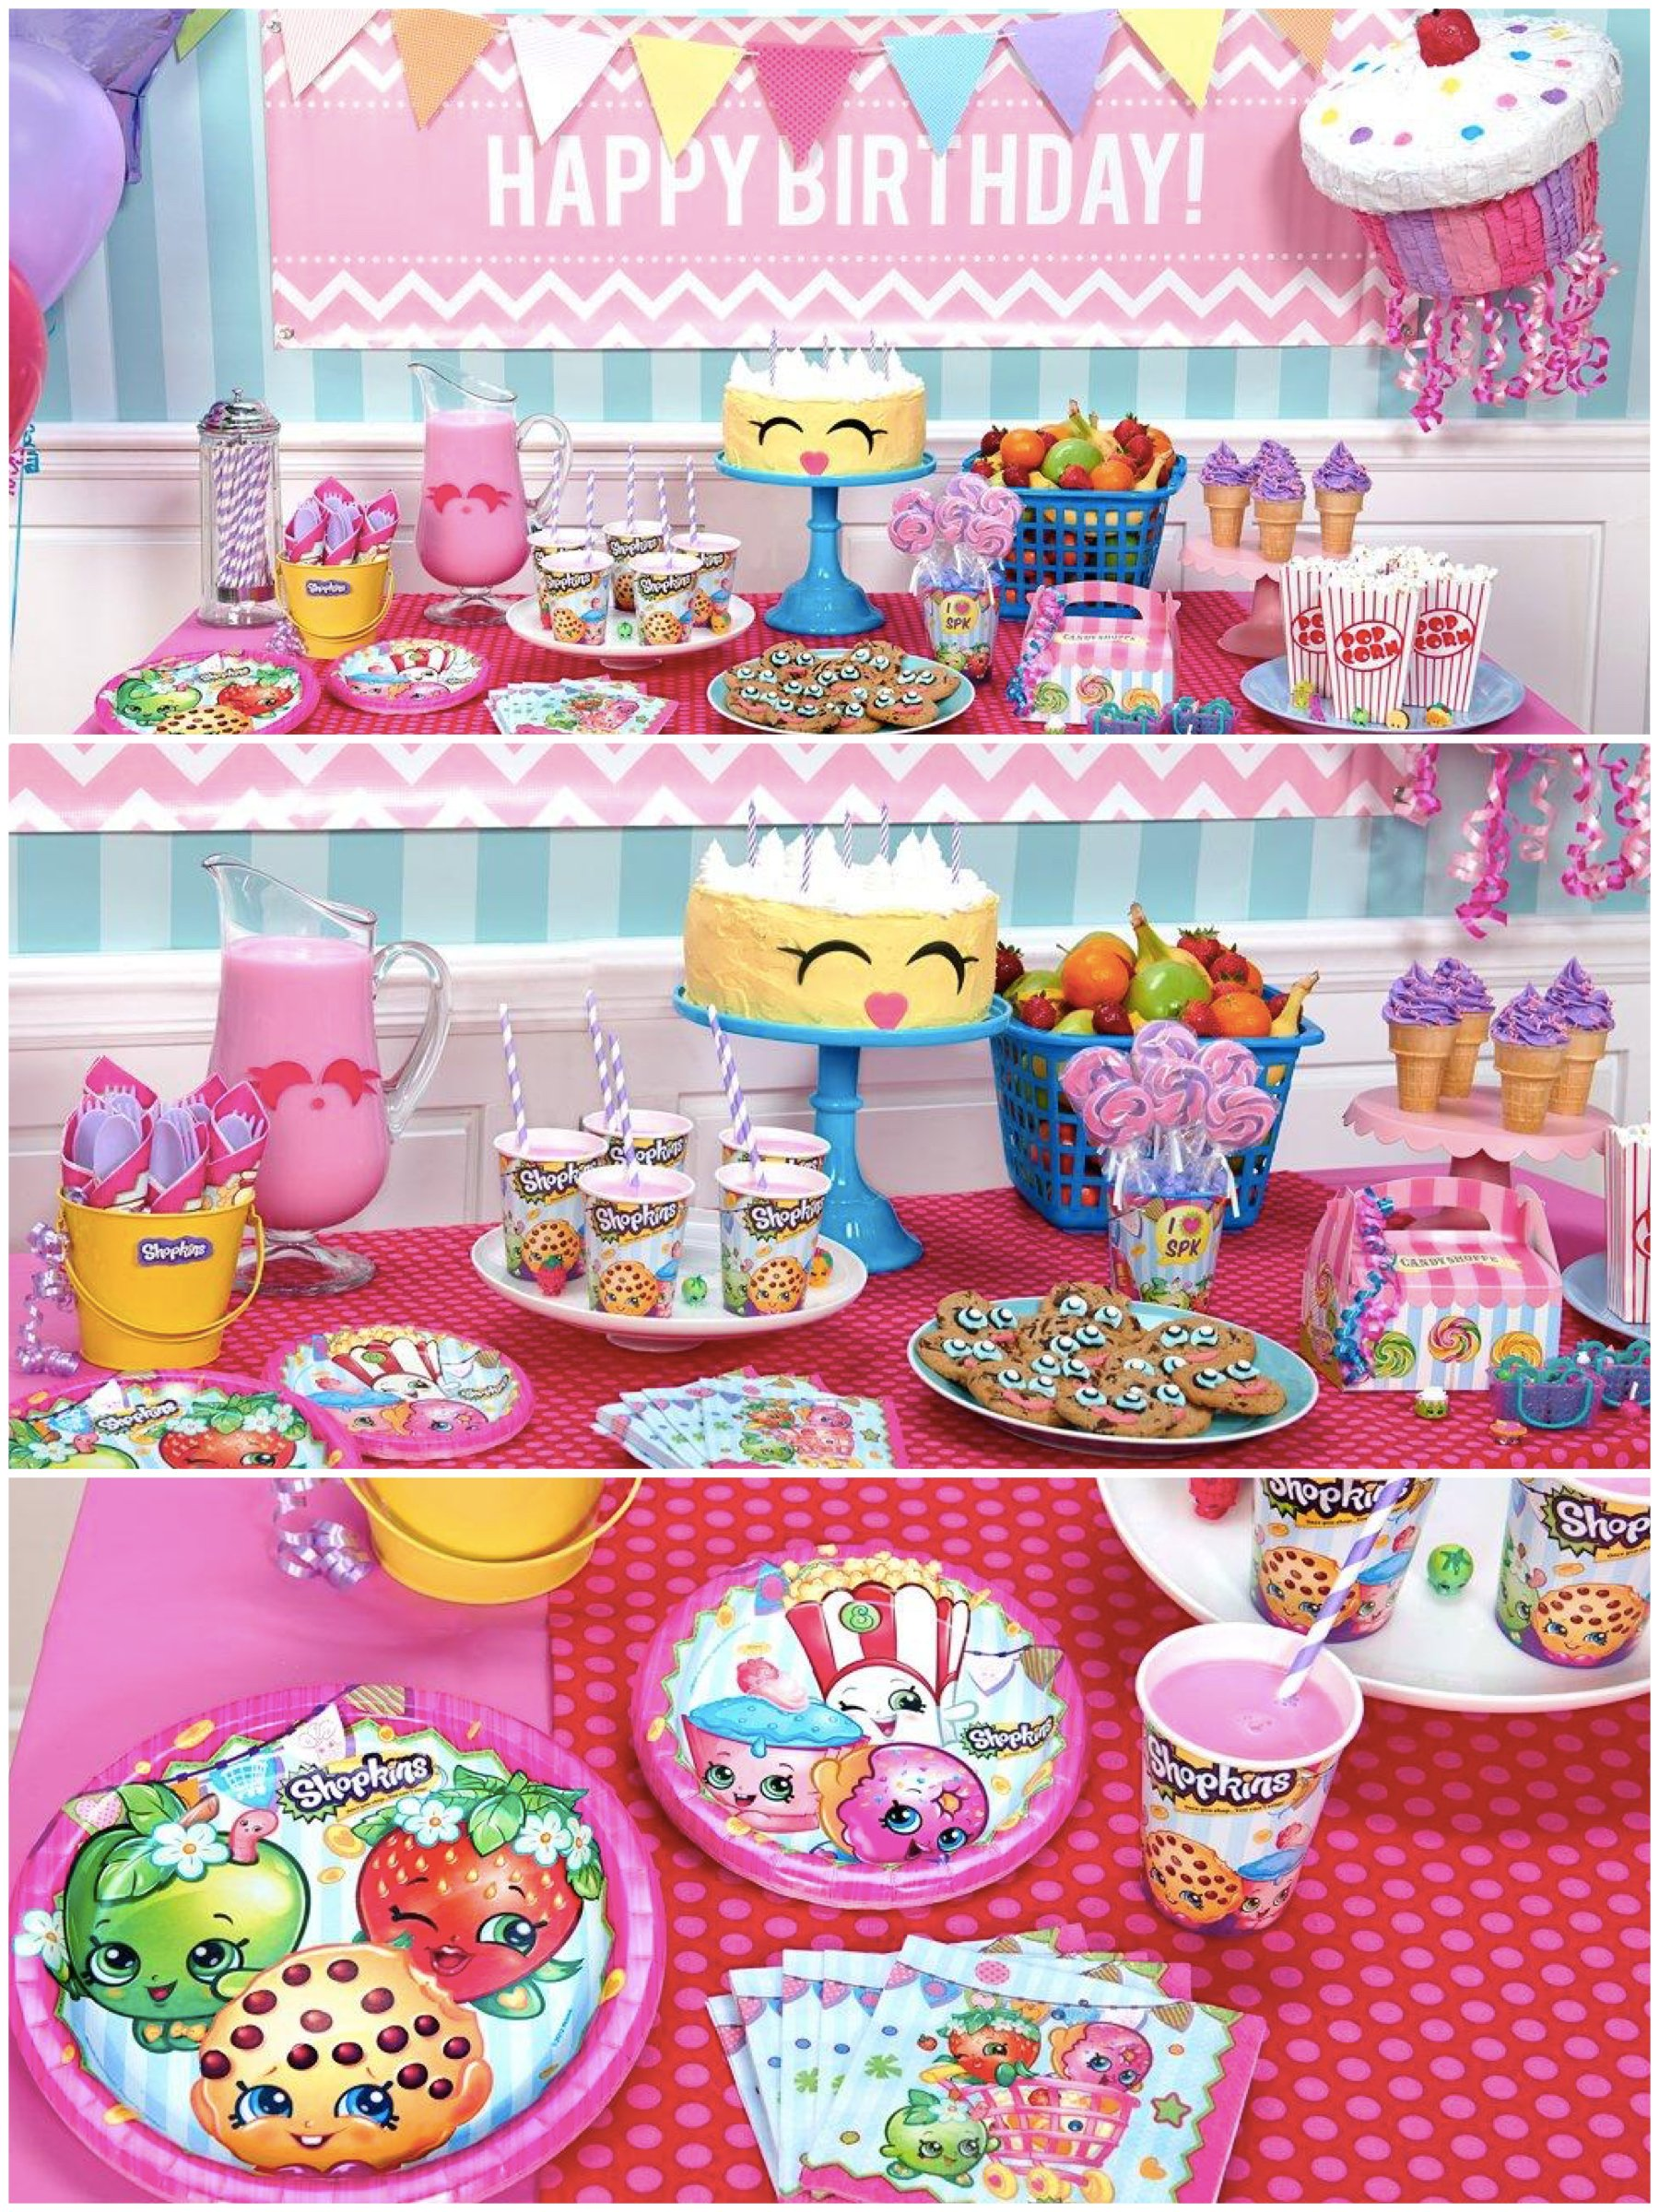 Birthday Supplies Shopkins Birthday Party Planning Ideas And Supplies Theme